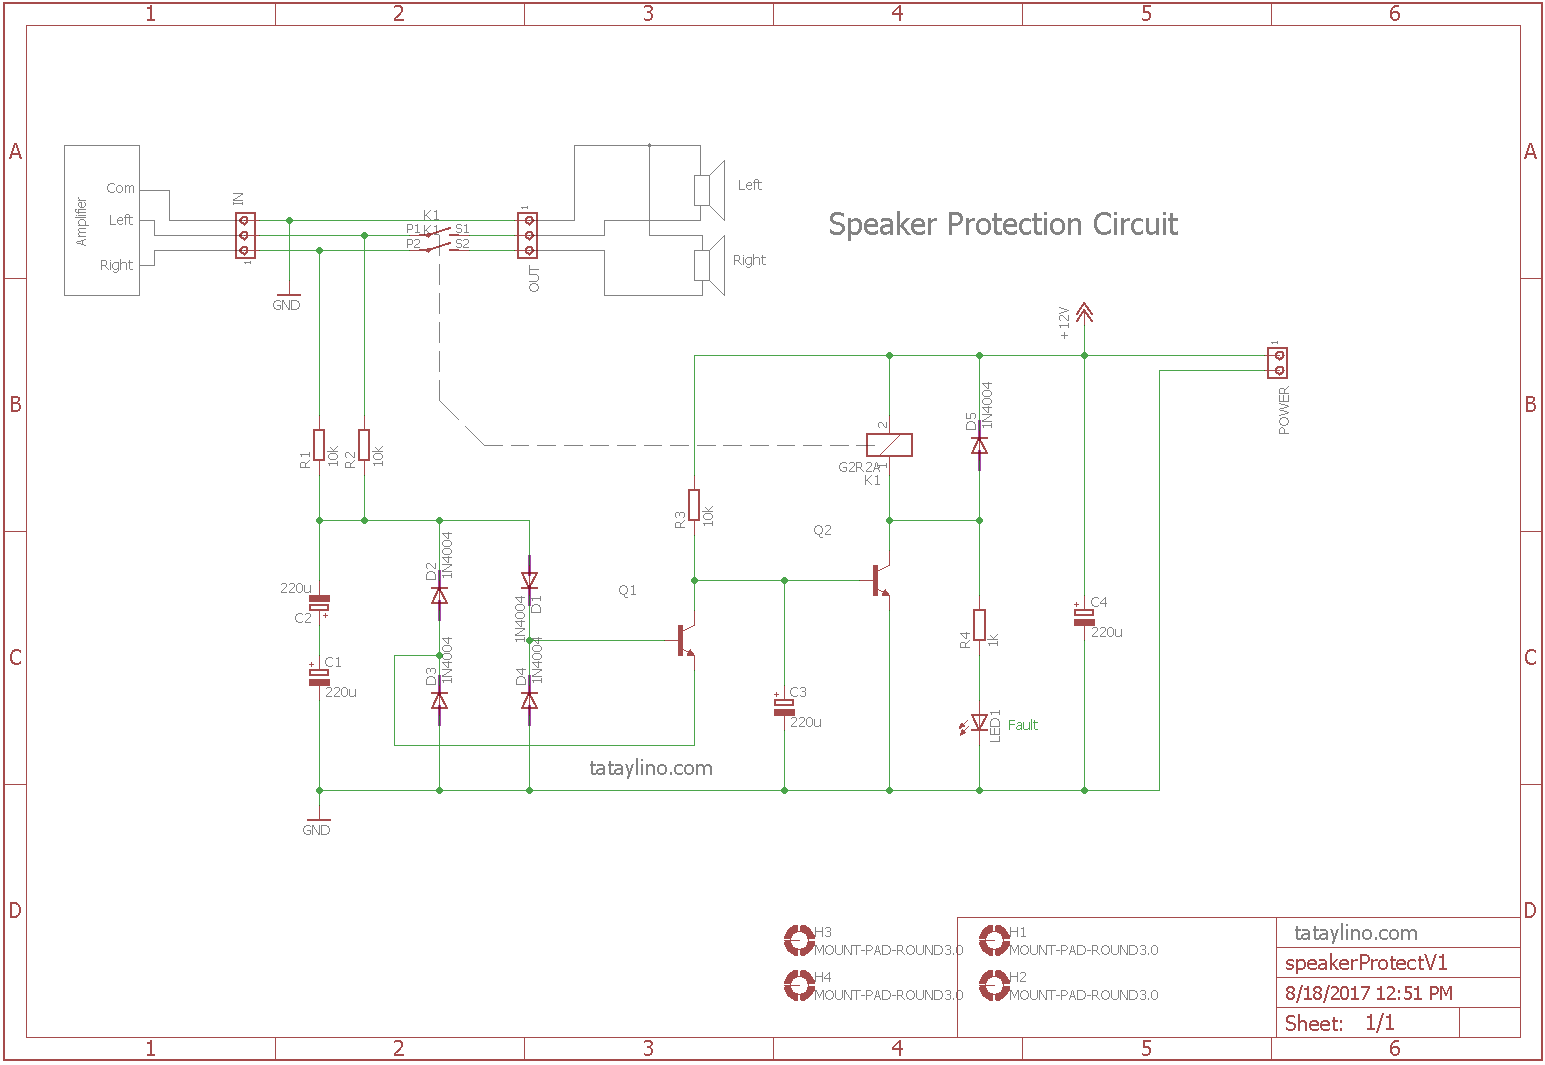 speaker_protection_sch speaker protection circuit tataylino com